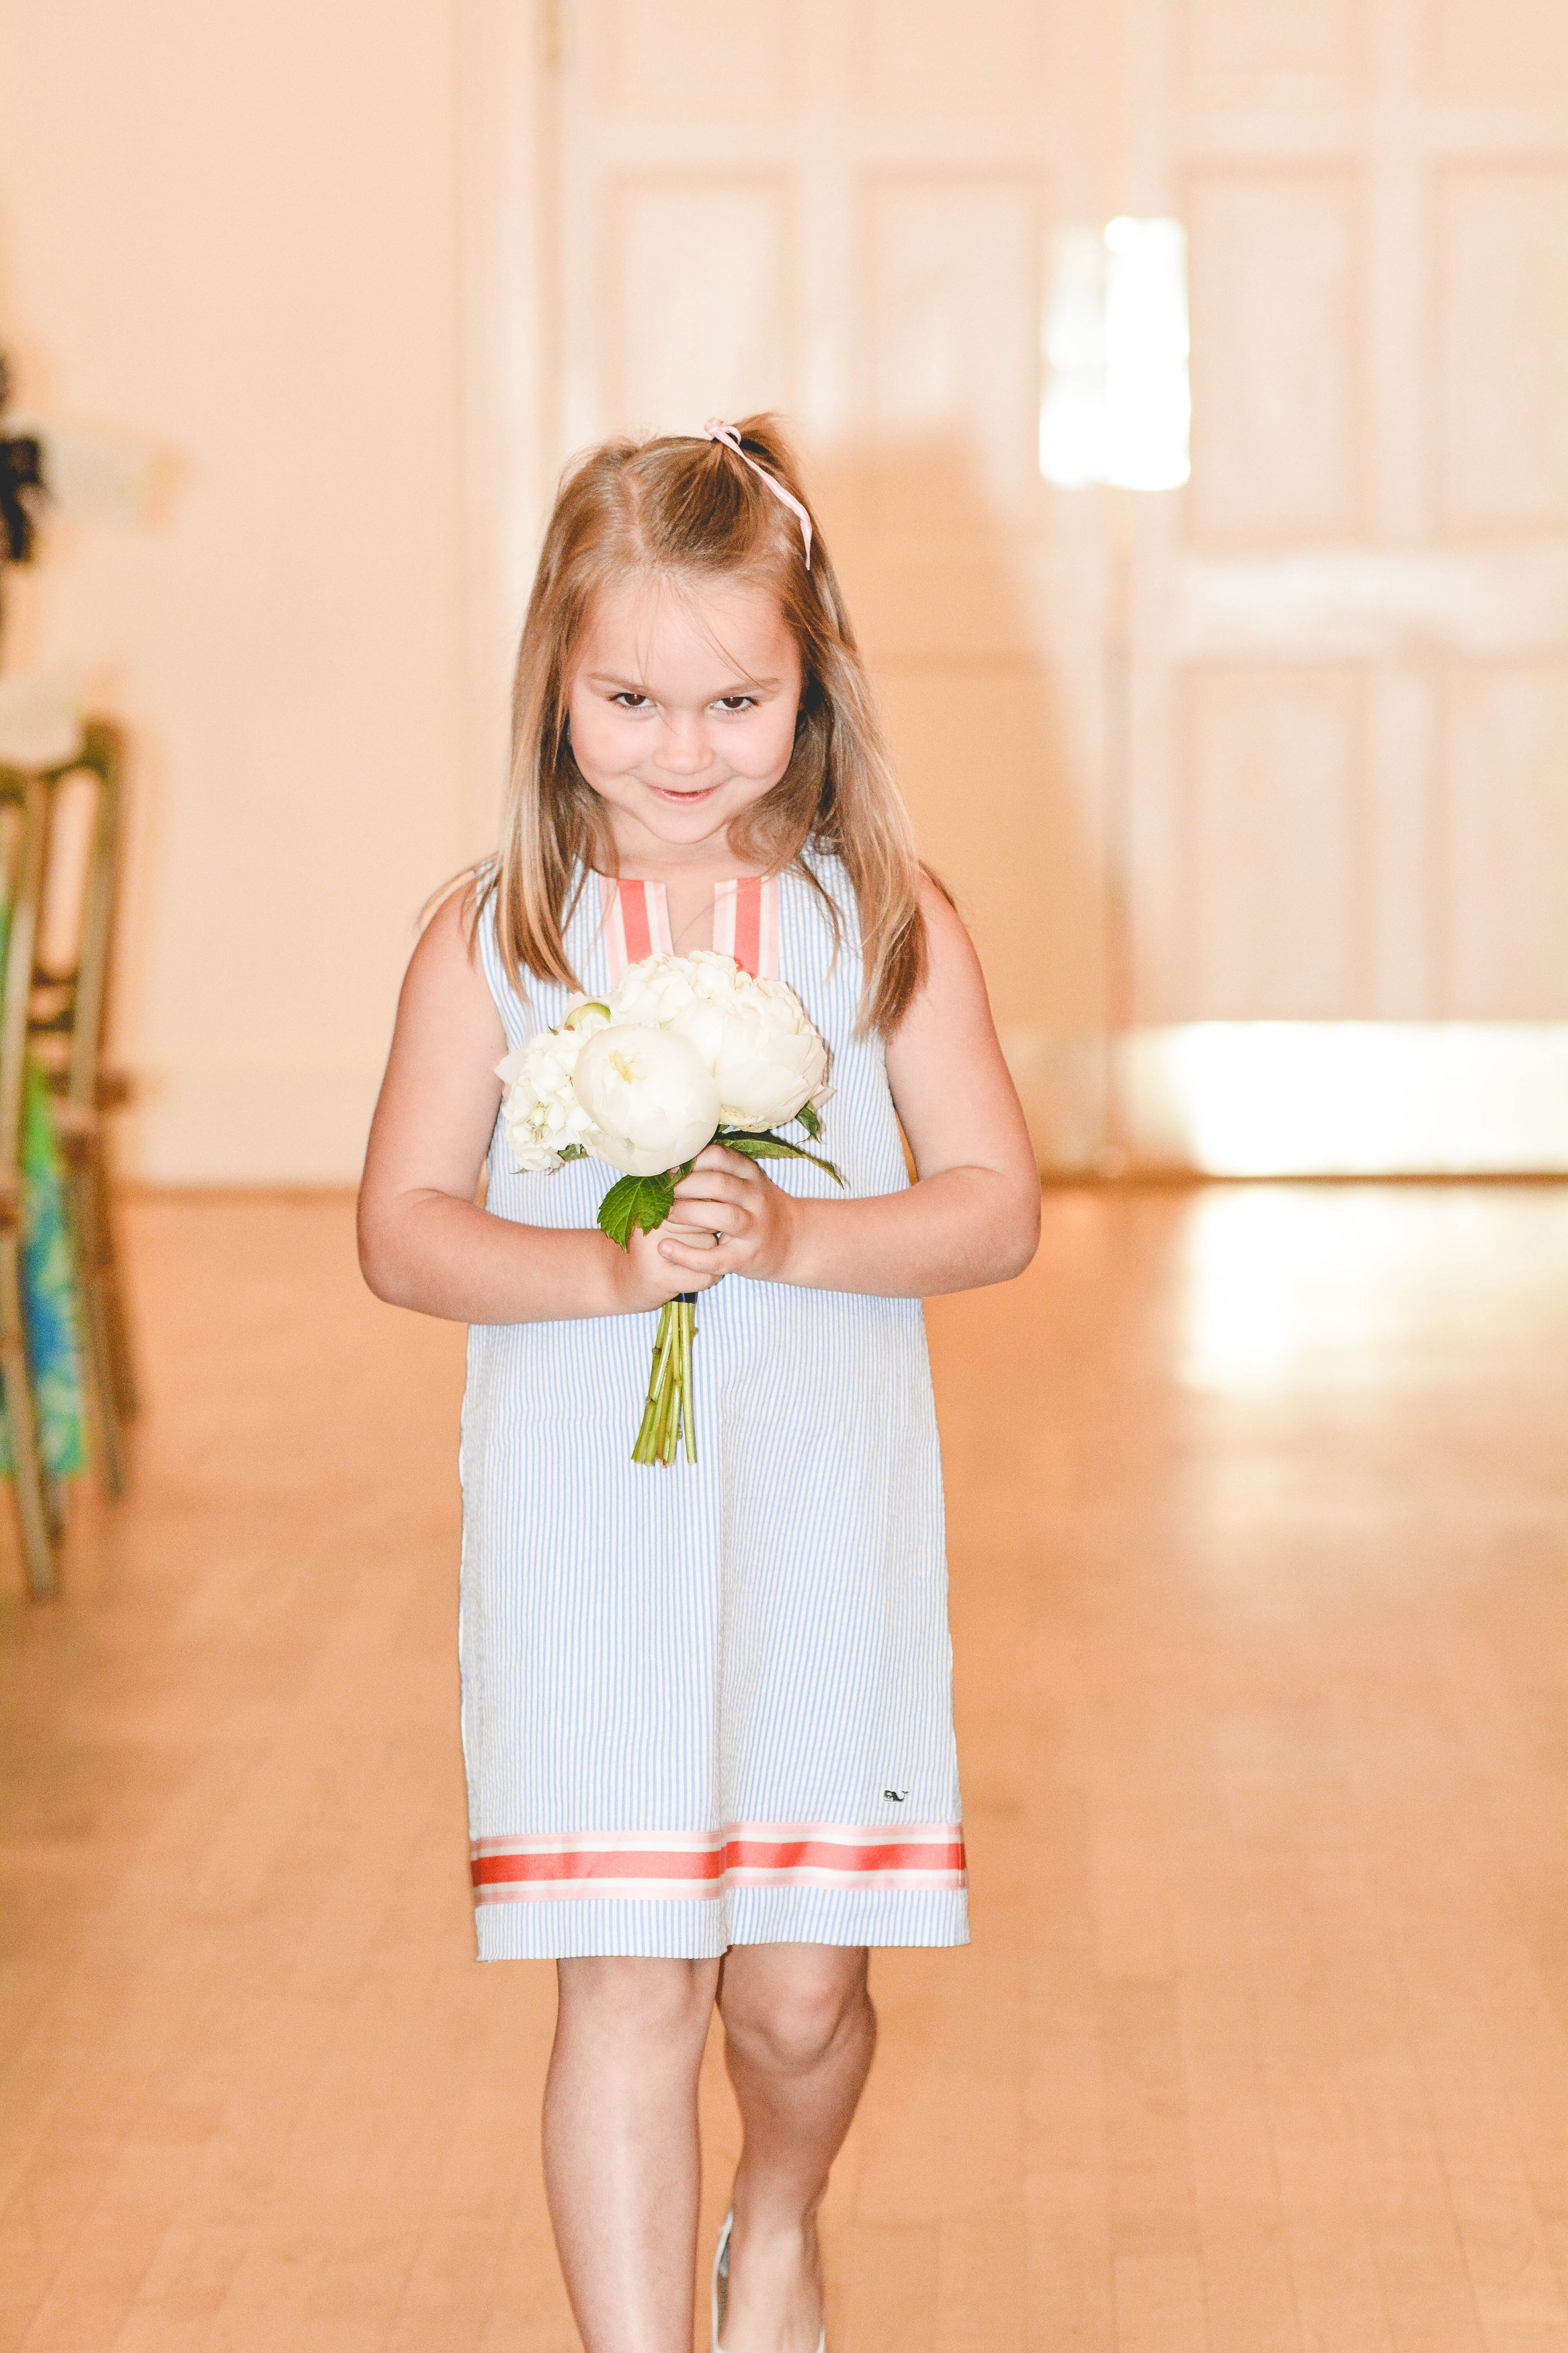 Atlanta wedding ceremony flower girl